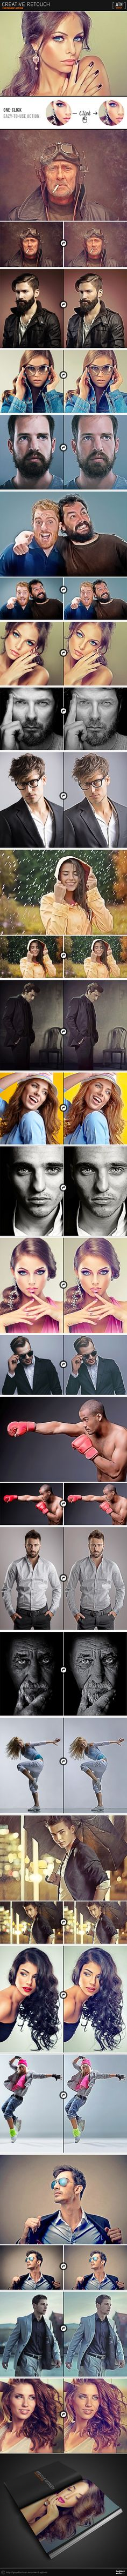 DOWNLOAD:  https://goo.gl/aYFCfr  Creative Retouch Make your photos look perfect with Creative Retouch photoshop action!   Files Includes: ATN File, Help PDF  Compatibility: Photoshop CS3, CS4, CS5, CS6, CC+